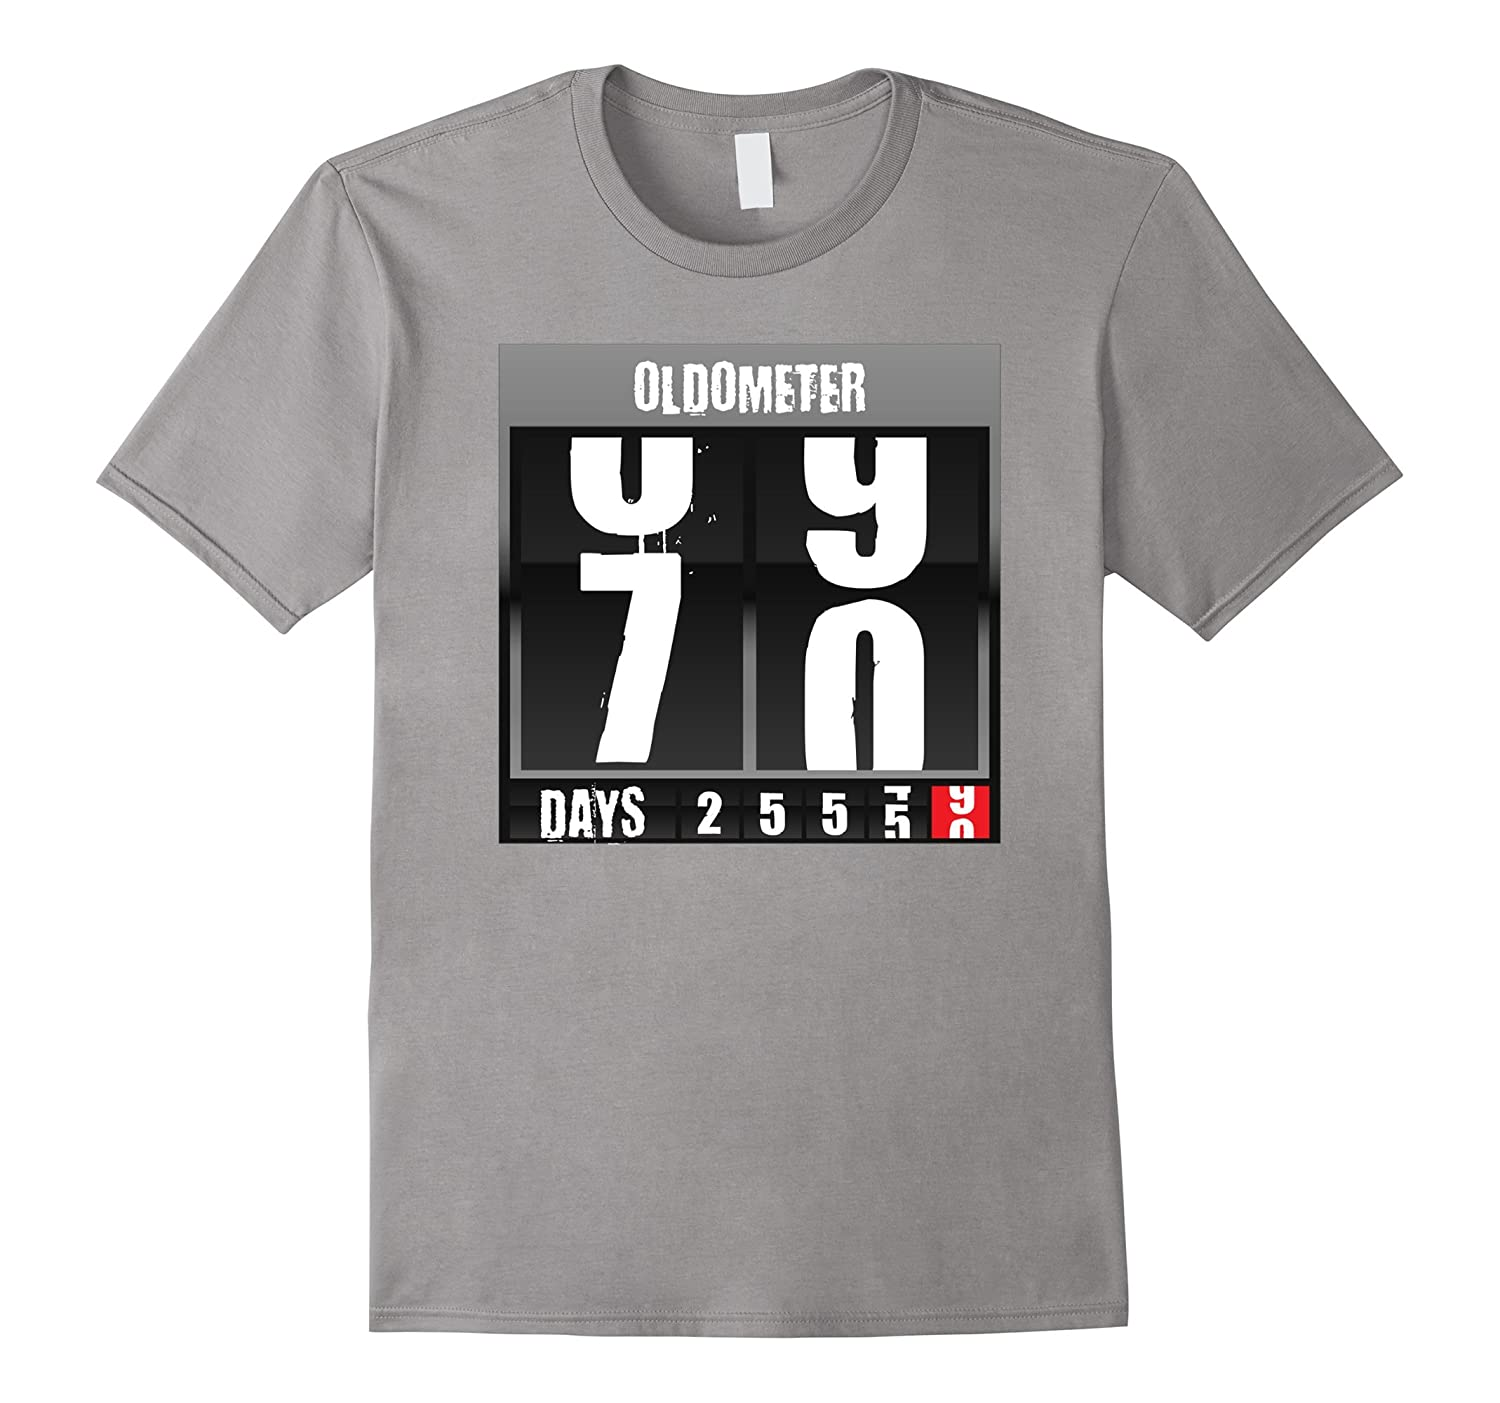 Oldometer 70 Yr Old Novelty Tshirts Birthday Gifts For Men PL